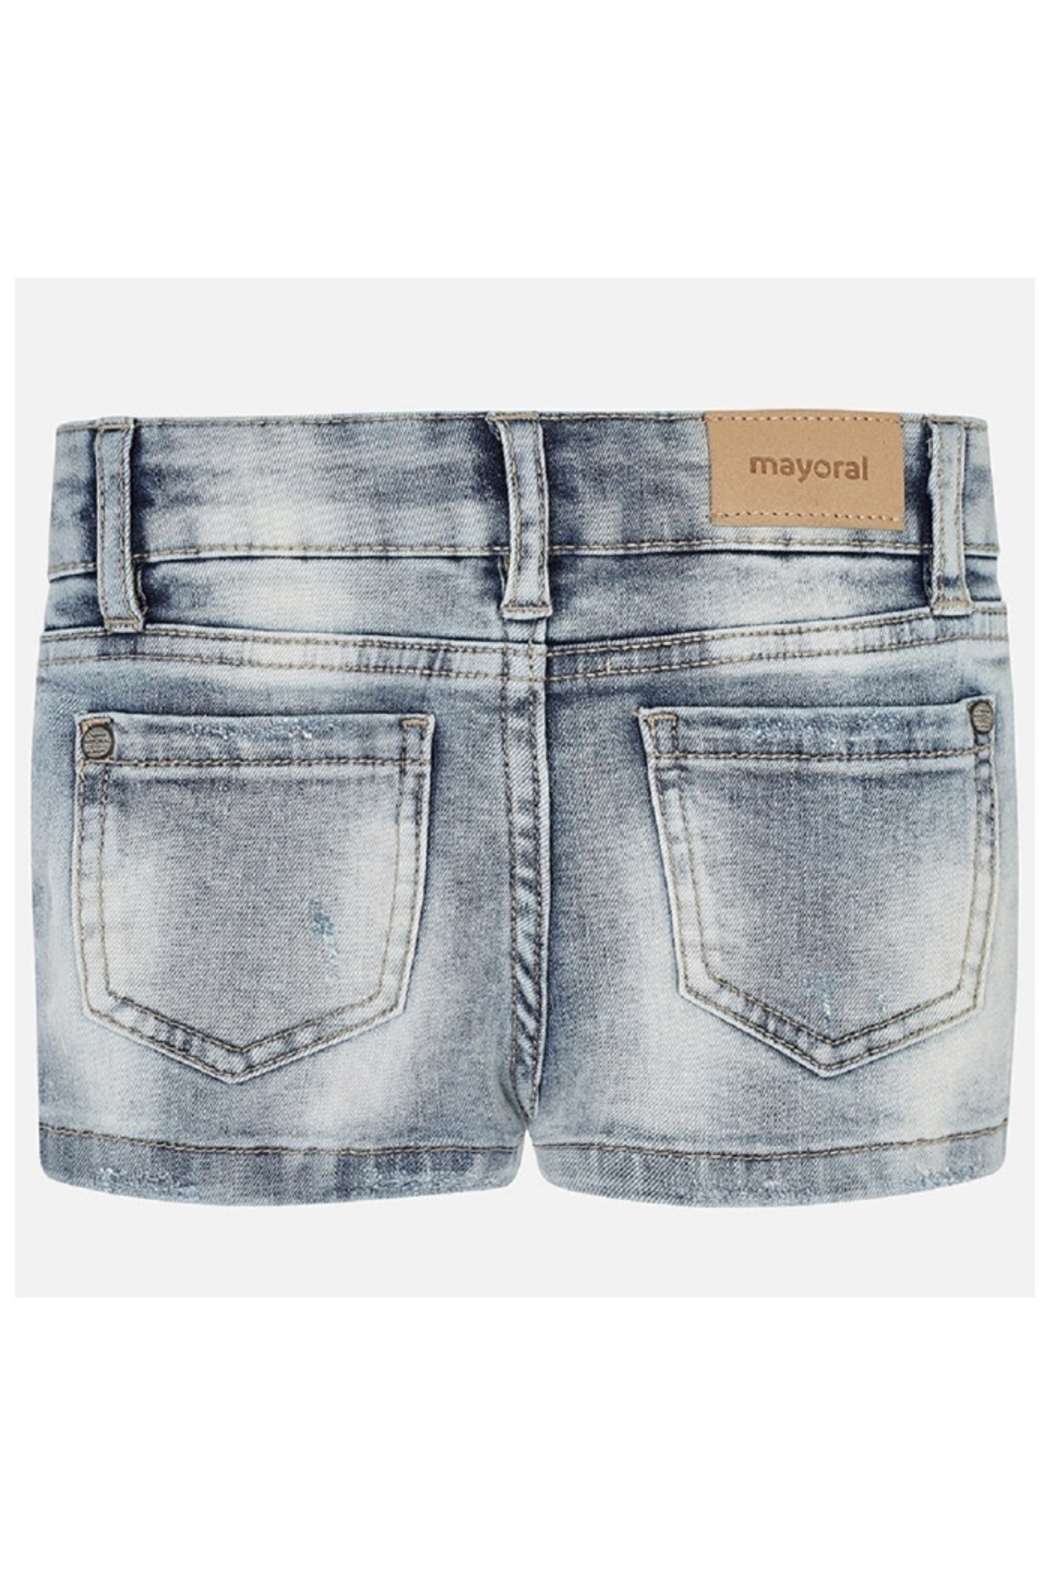 Mayoral BASIC STRETCH DENIM SHORT - Side Cropped Image